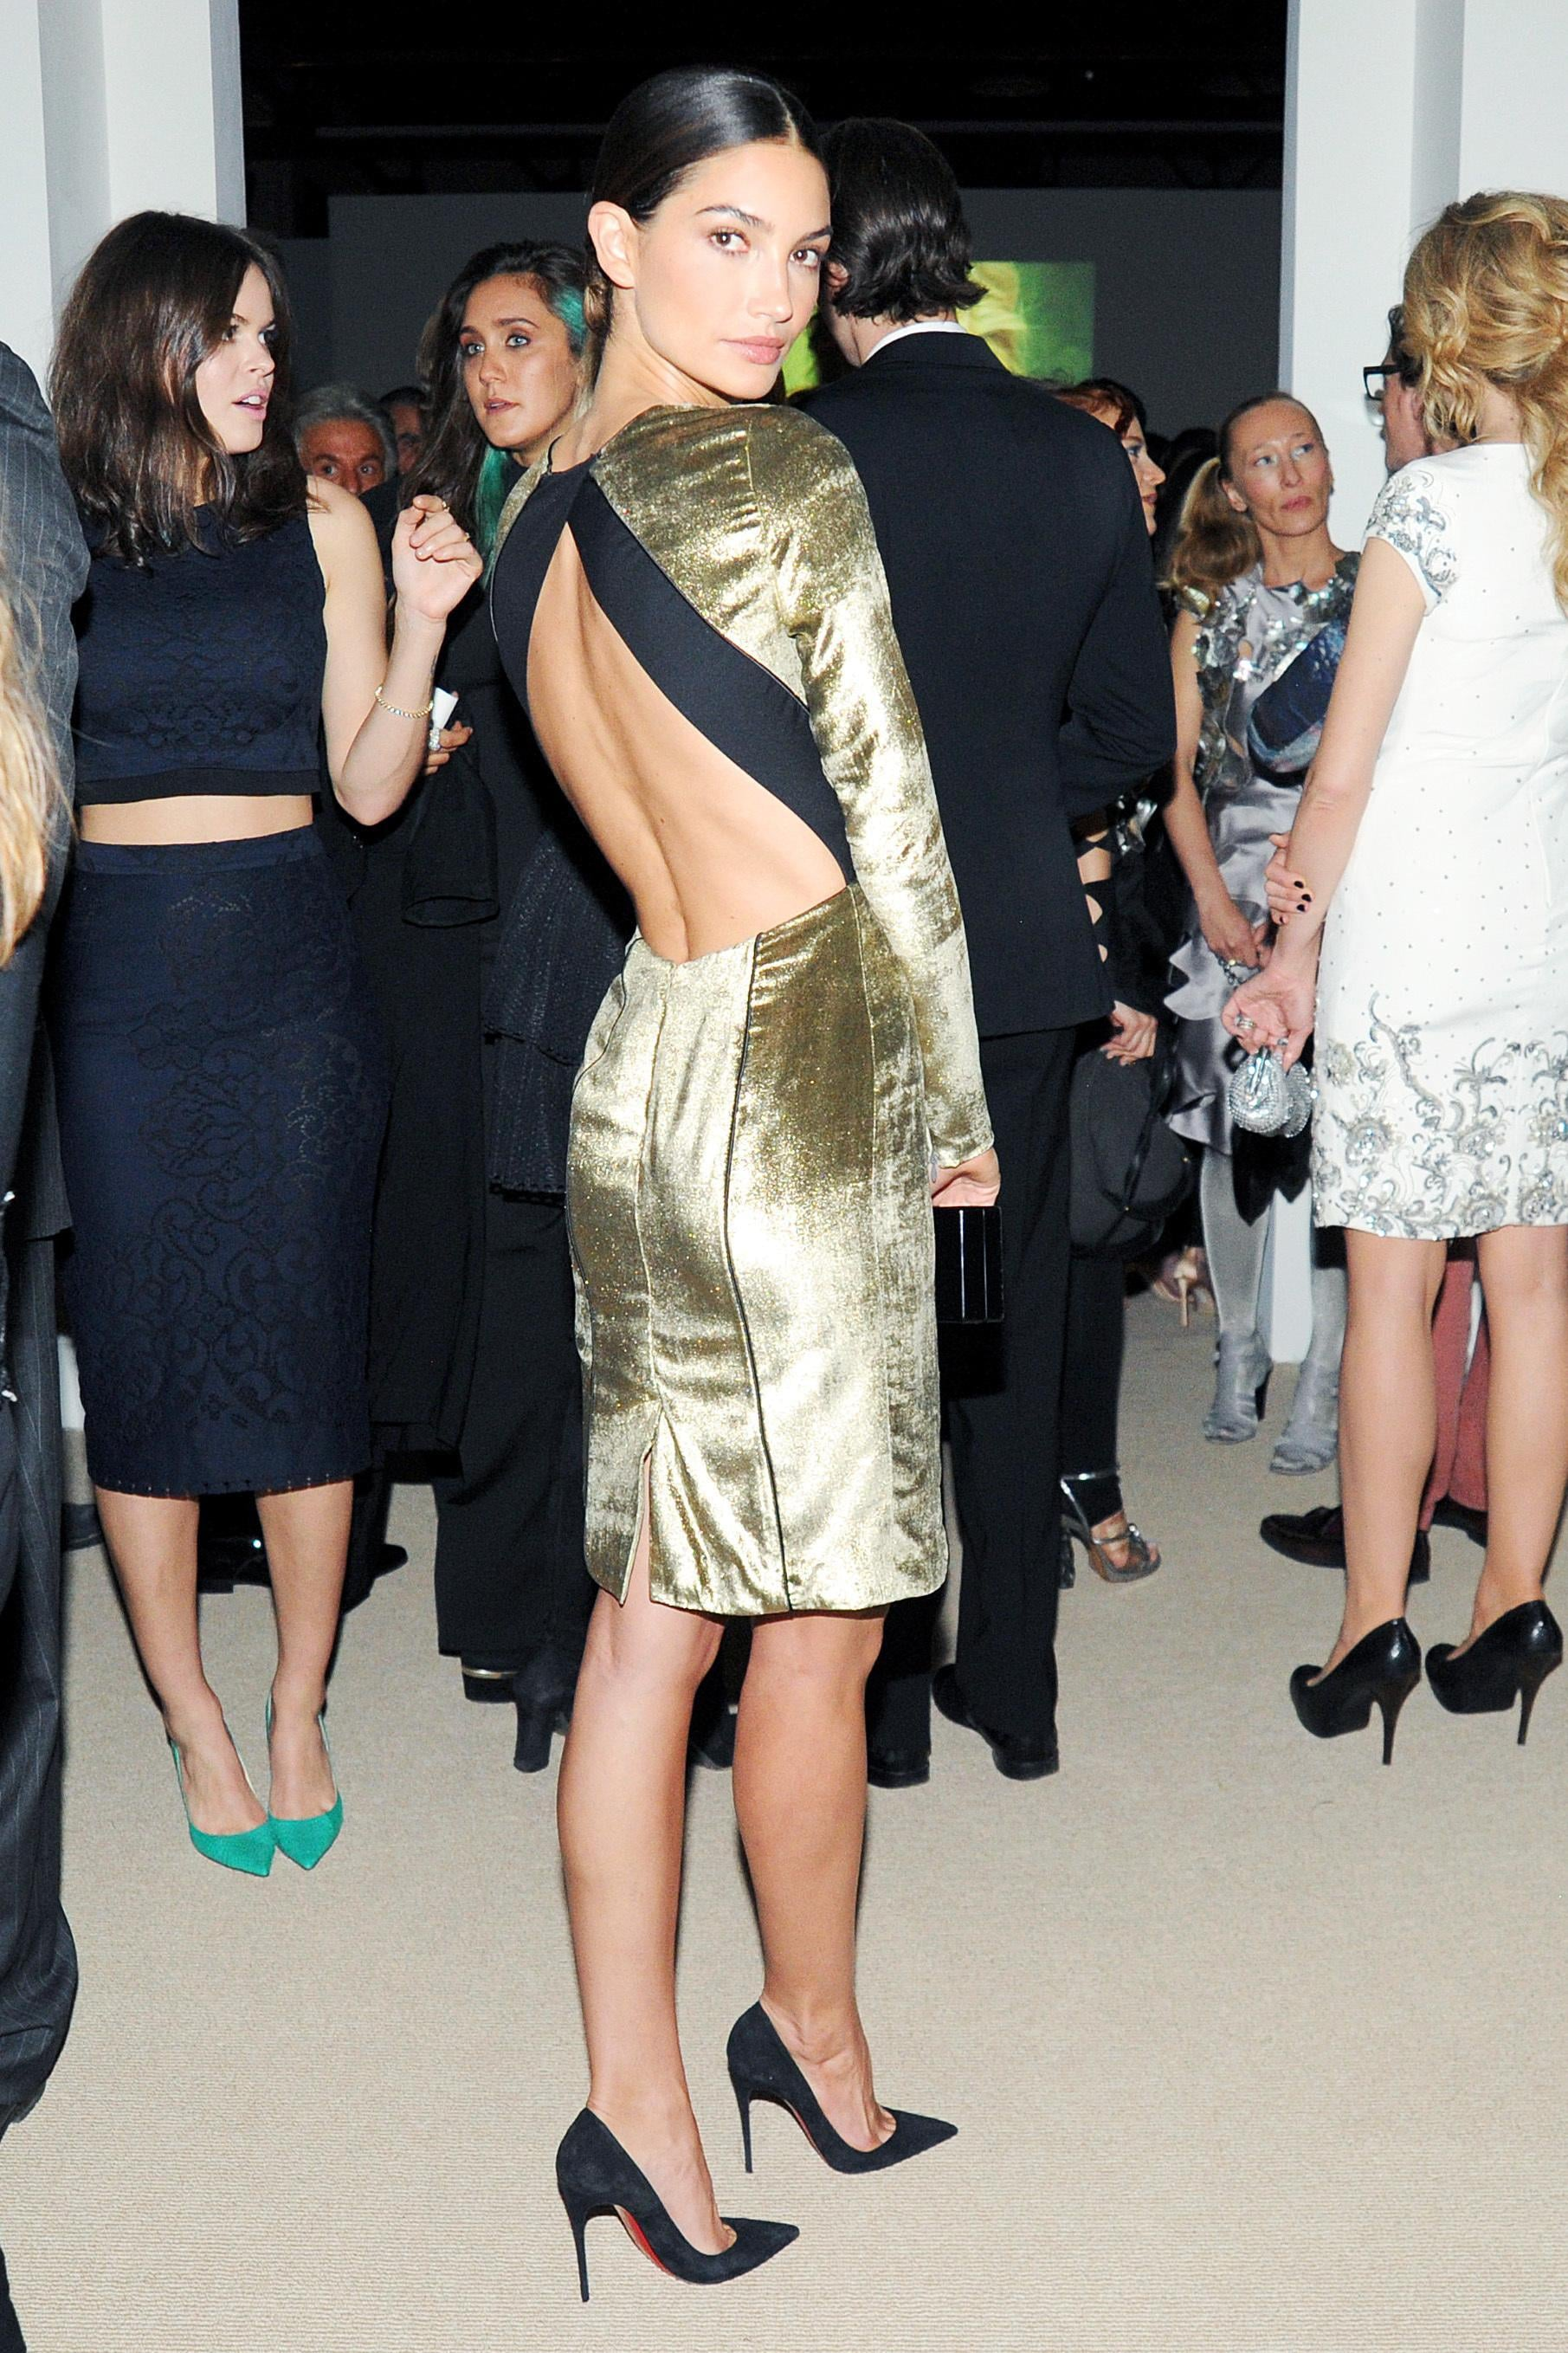 Lily Aldridge in Veronica Beard at the CFDA/Vogue Fashion Fund Awards.